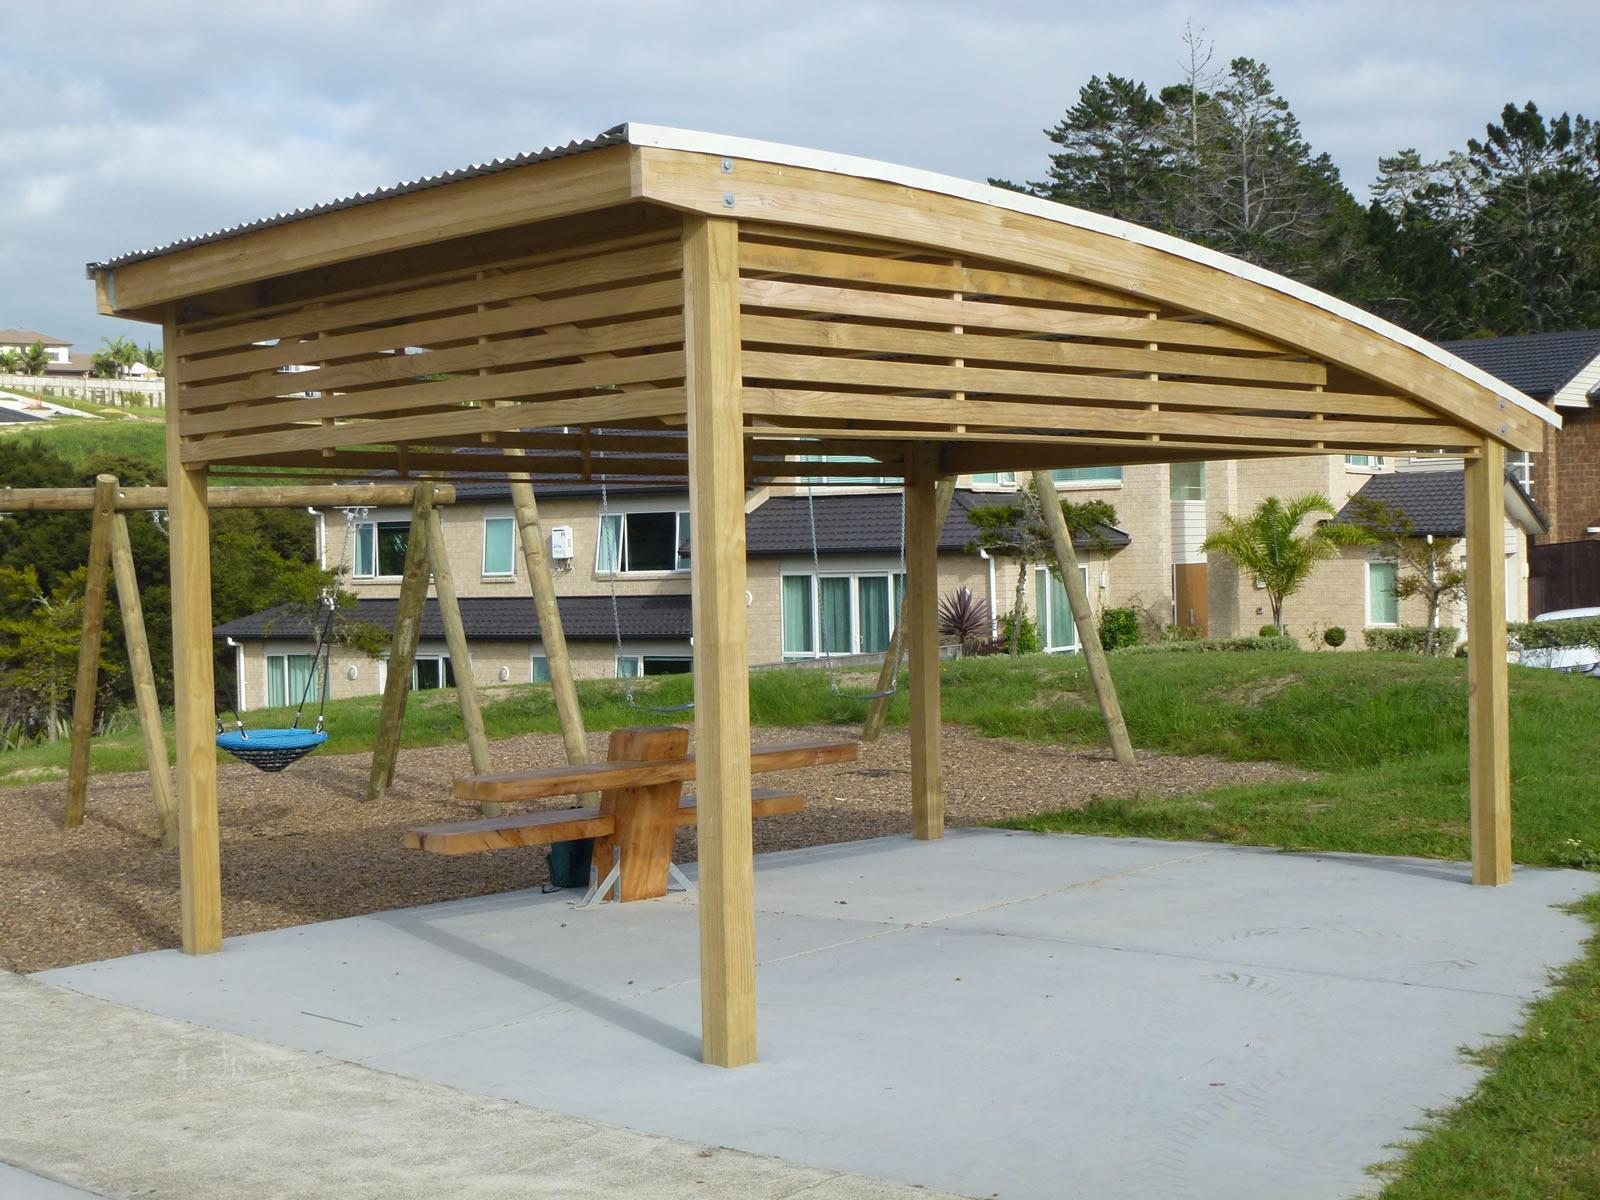 Kiwi Curved Shelter Park Amp Street Furniture Urban Effects